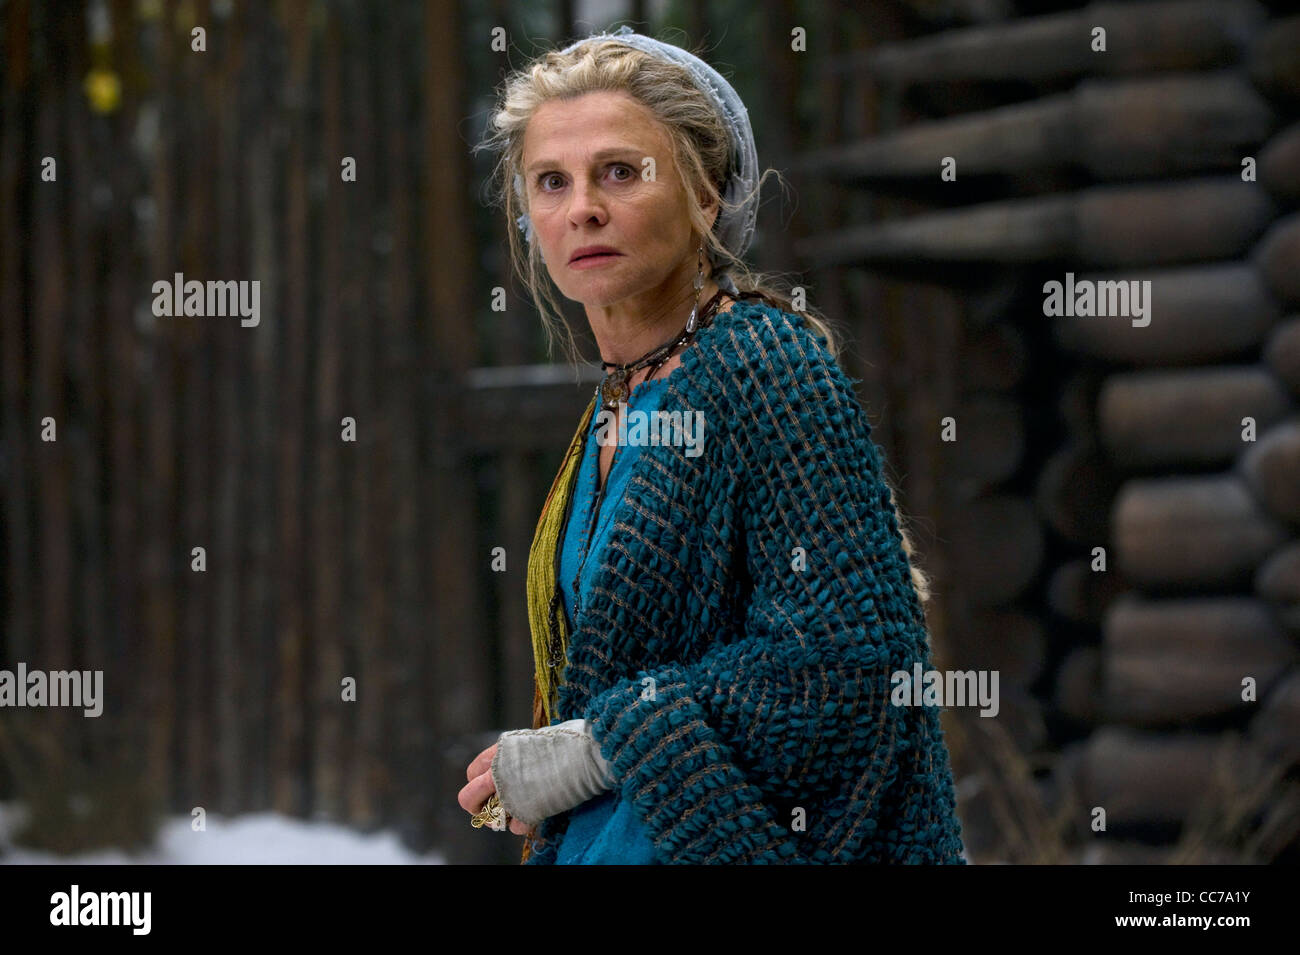 JULIE CHRISTIE RED RIDING HOOD (2011) - Stock Image